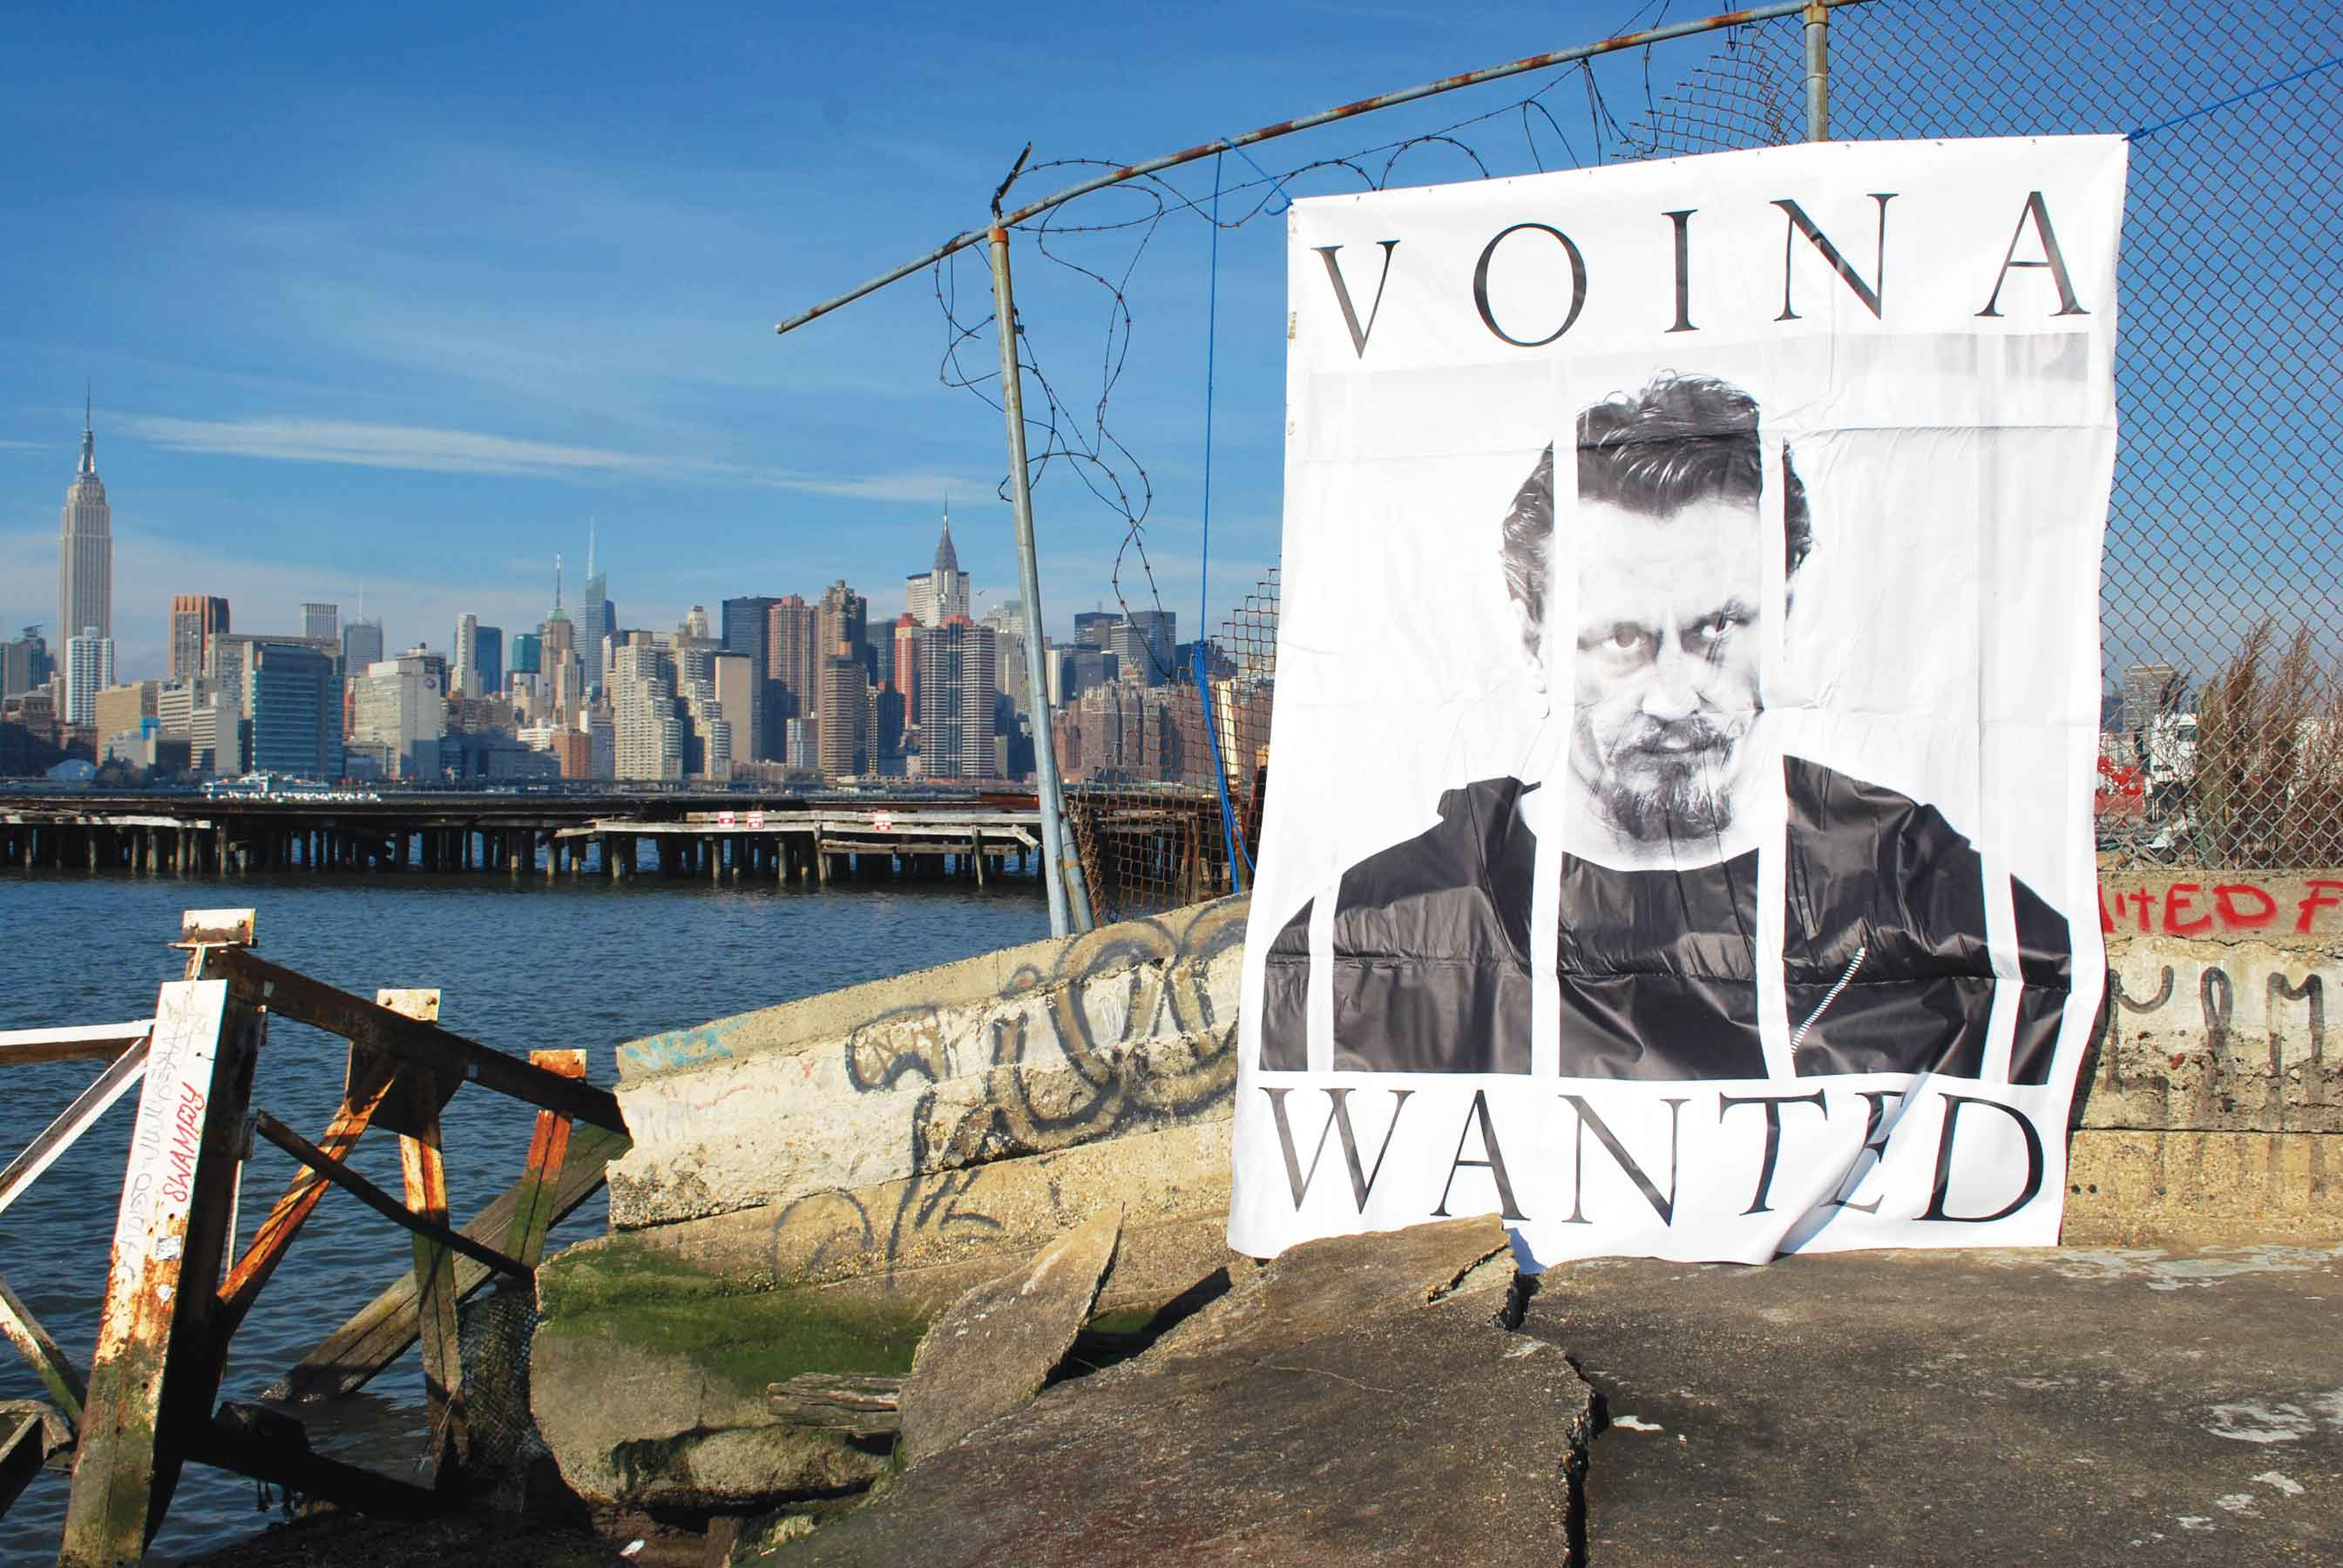 Voina Wanted action. Brooklyn, New York. January 5, 2012. Participating Voina Group activist: Brad Downey, Ed Zipco and Quenell Jones. Initiator of the action: Alexei Plutser-Sarno. Portrait of Oleg Vorotnikov at the courtroom by Vladimir Telegin. All photos are courtesy of Voina Group.